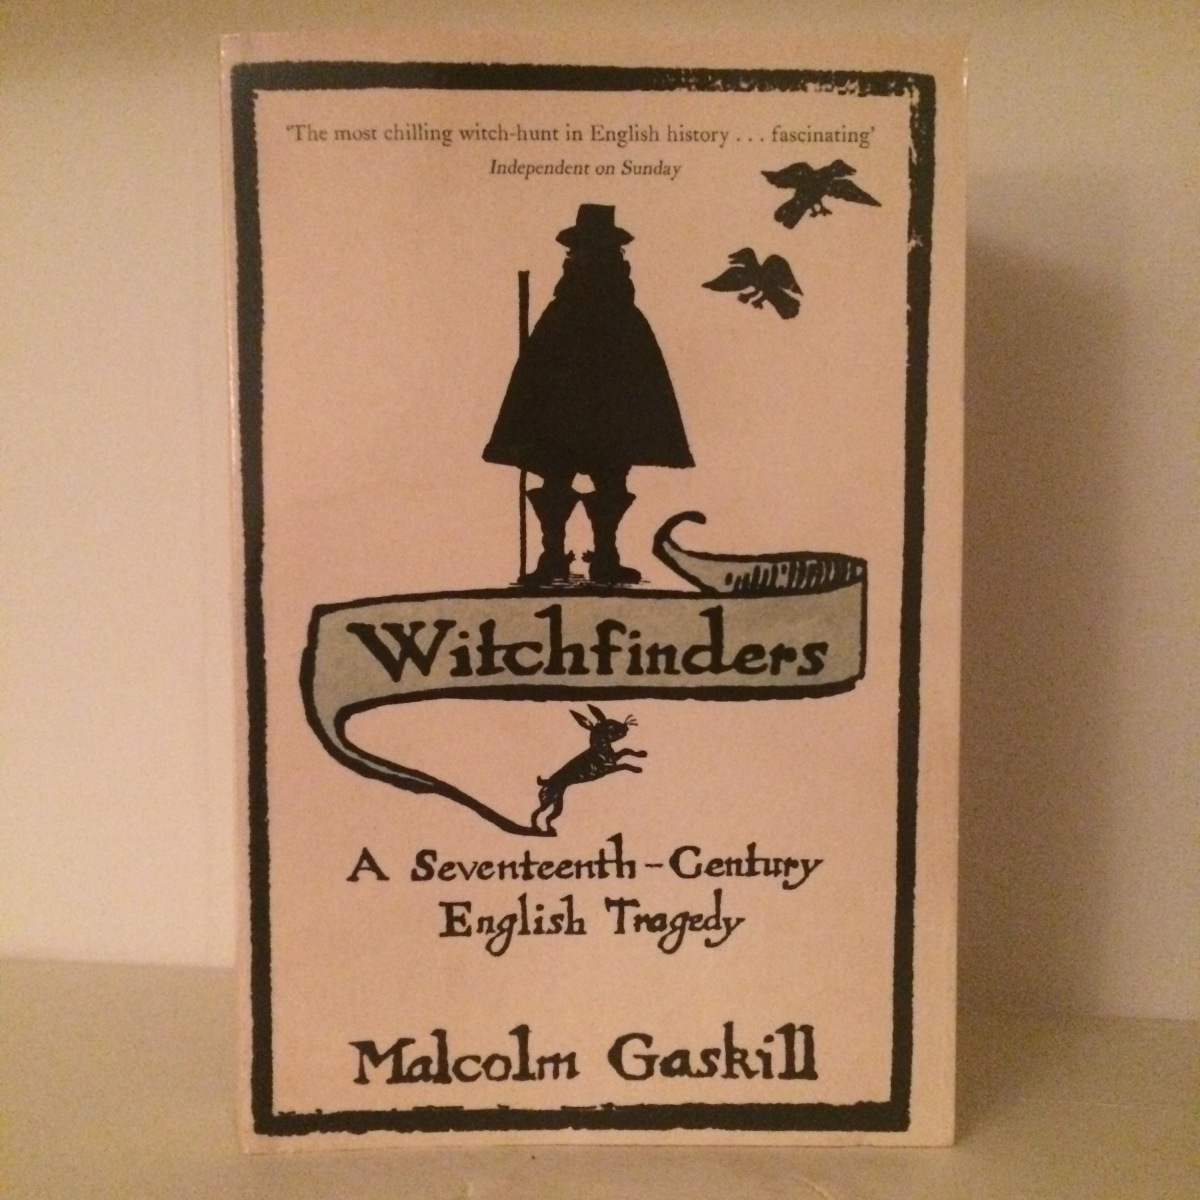 Witchfinders: A Seventeenth-Century English Tragedy by Malcolm Gaskill